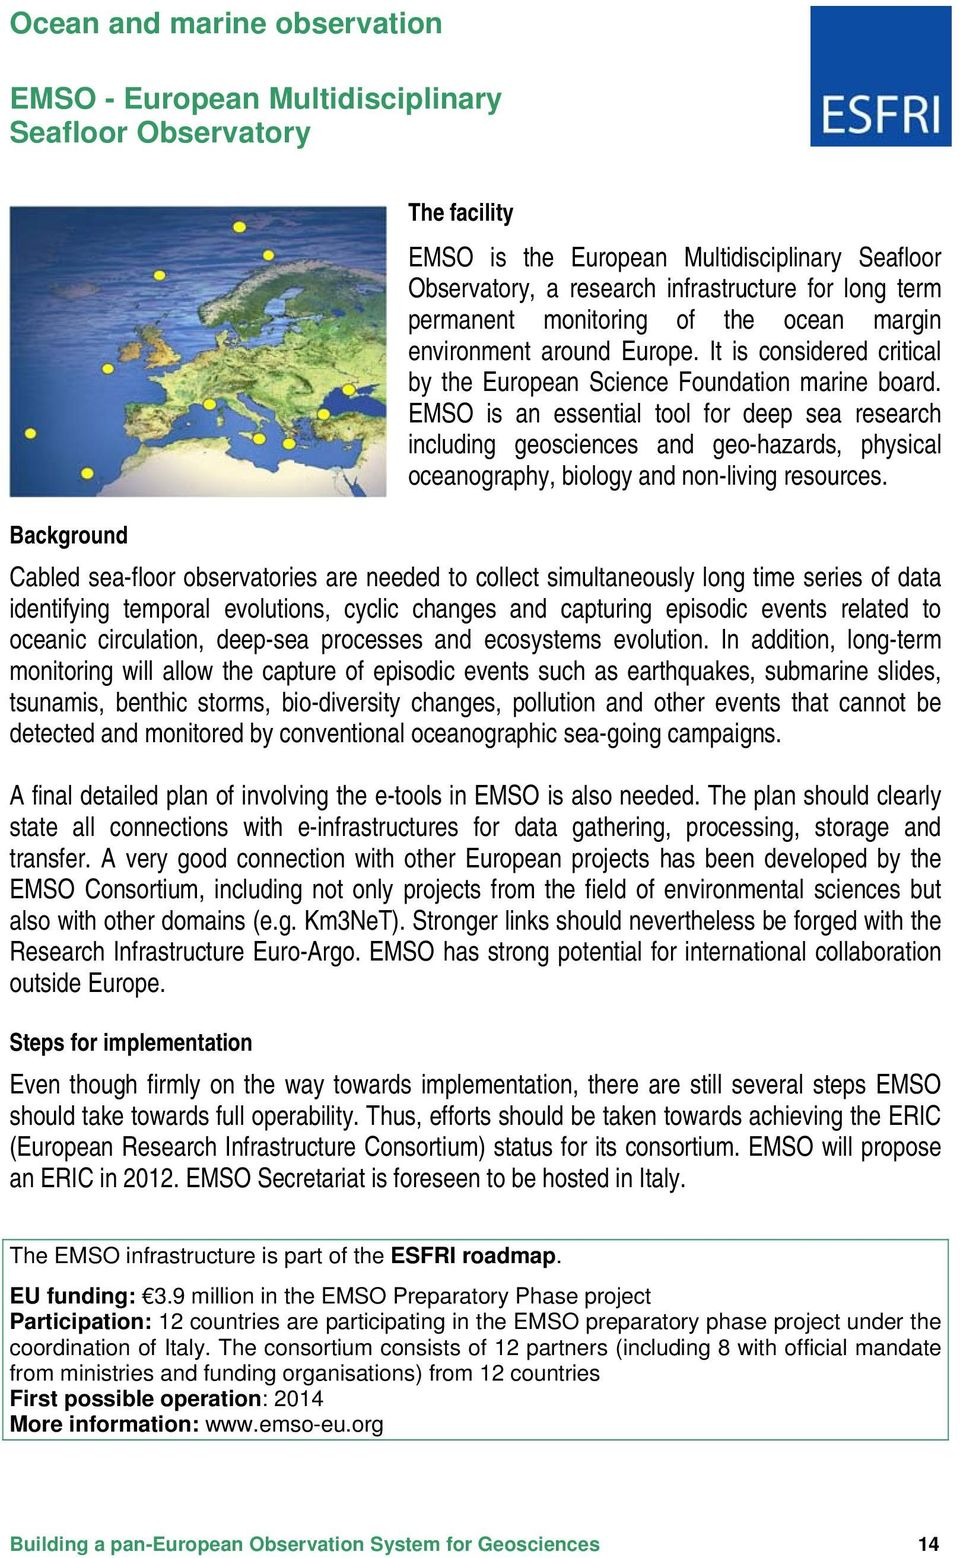 EMSO is an essential tool for deep sea research including geosciences and geo-hazards, physical oceanography, biology and non-living resources.